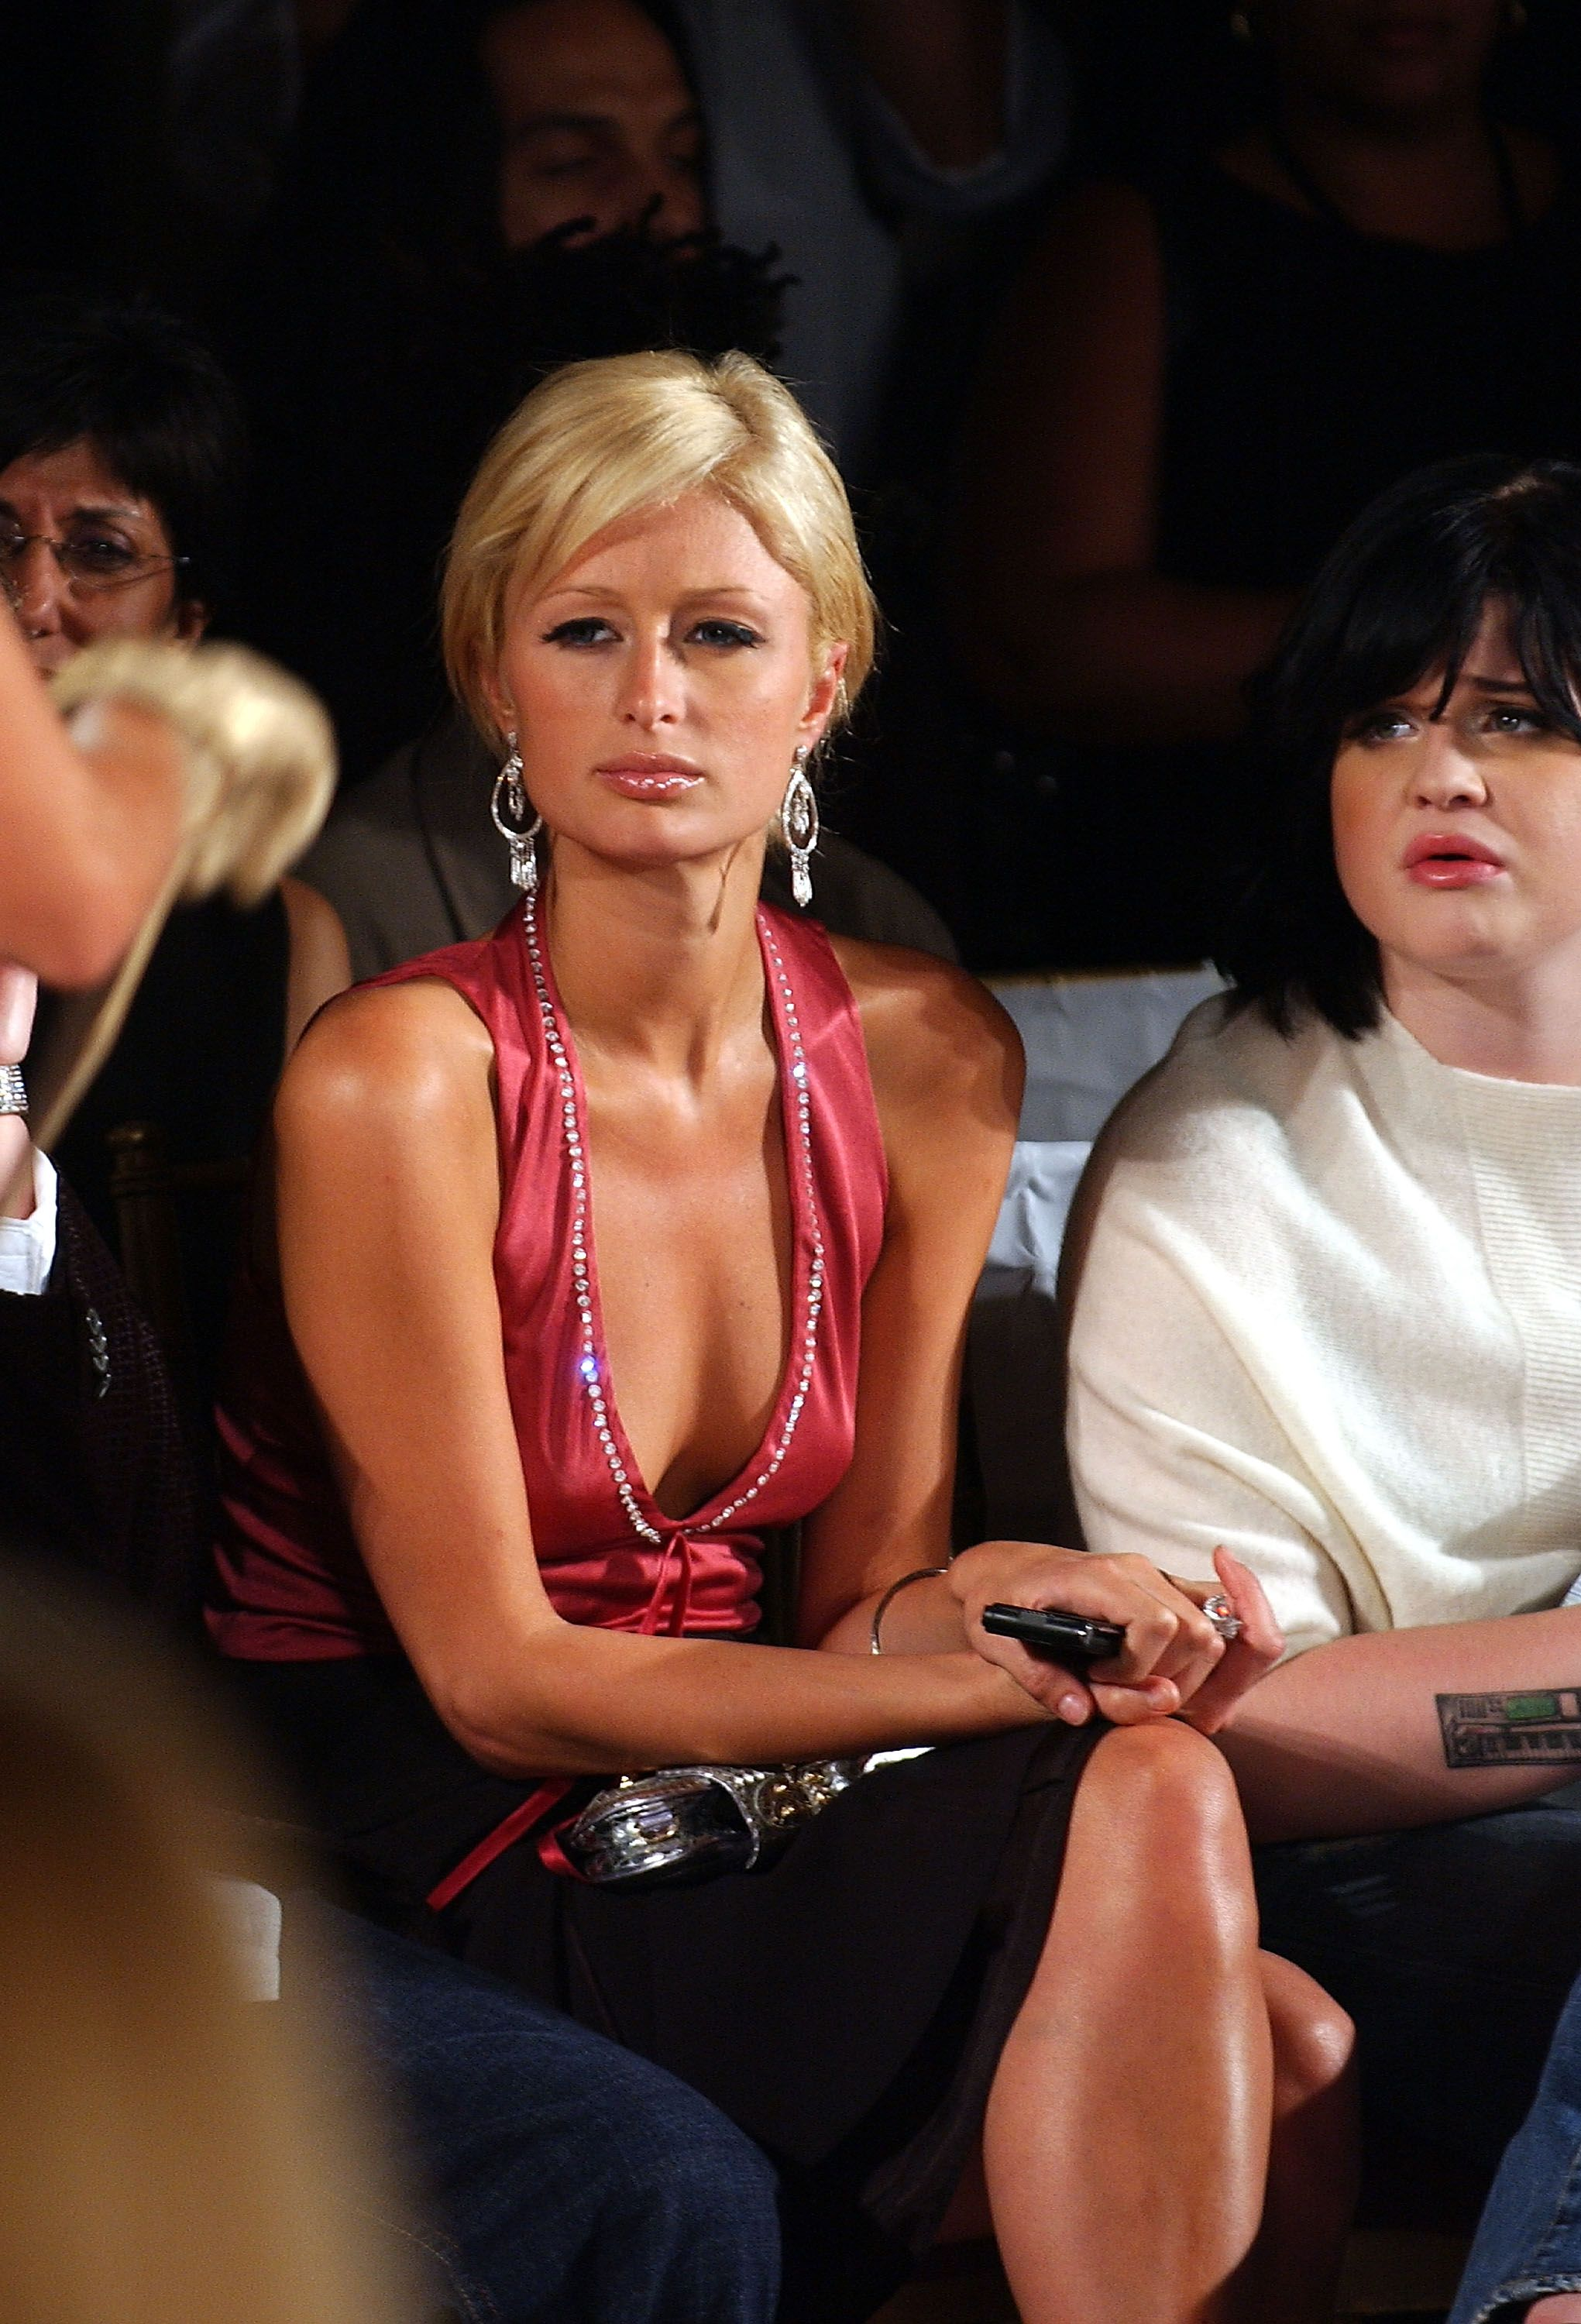 Paris Hilton and Kelly Osbourne at the Kai Milla Spring fashion show during Olympus Fashion Week on September 11, 2005, in New York City   Photo: Bryan Bedder/Getty Images